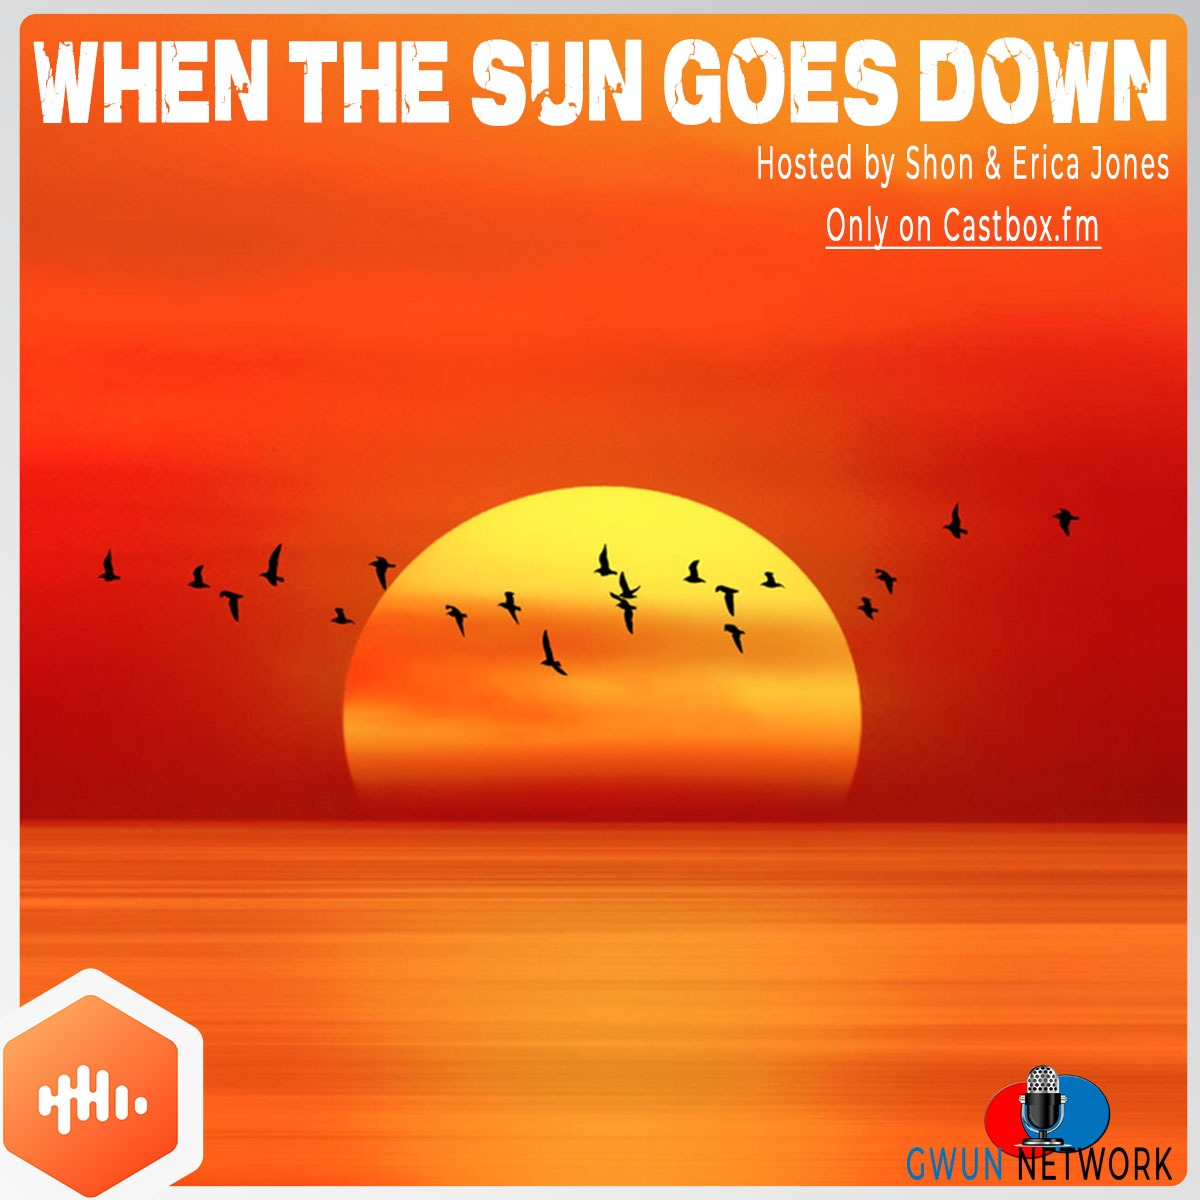 When the Sun Goes Down | Listen Free on Castbox